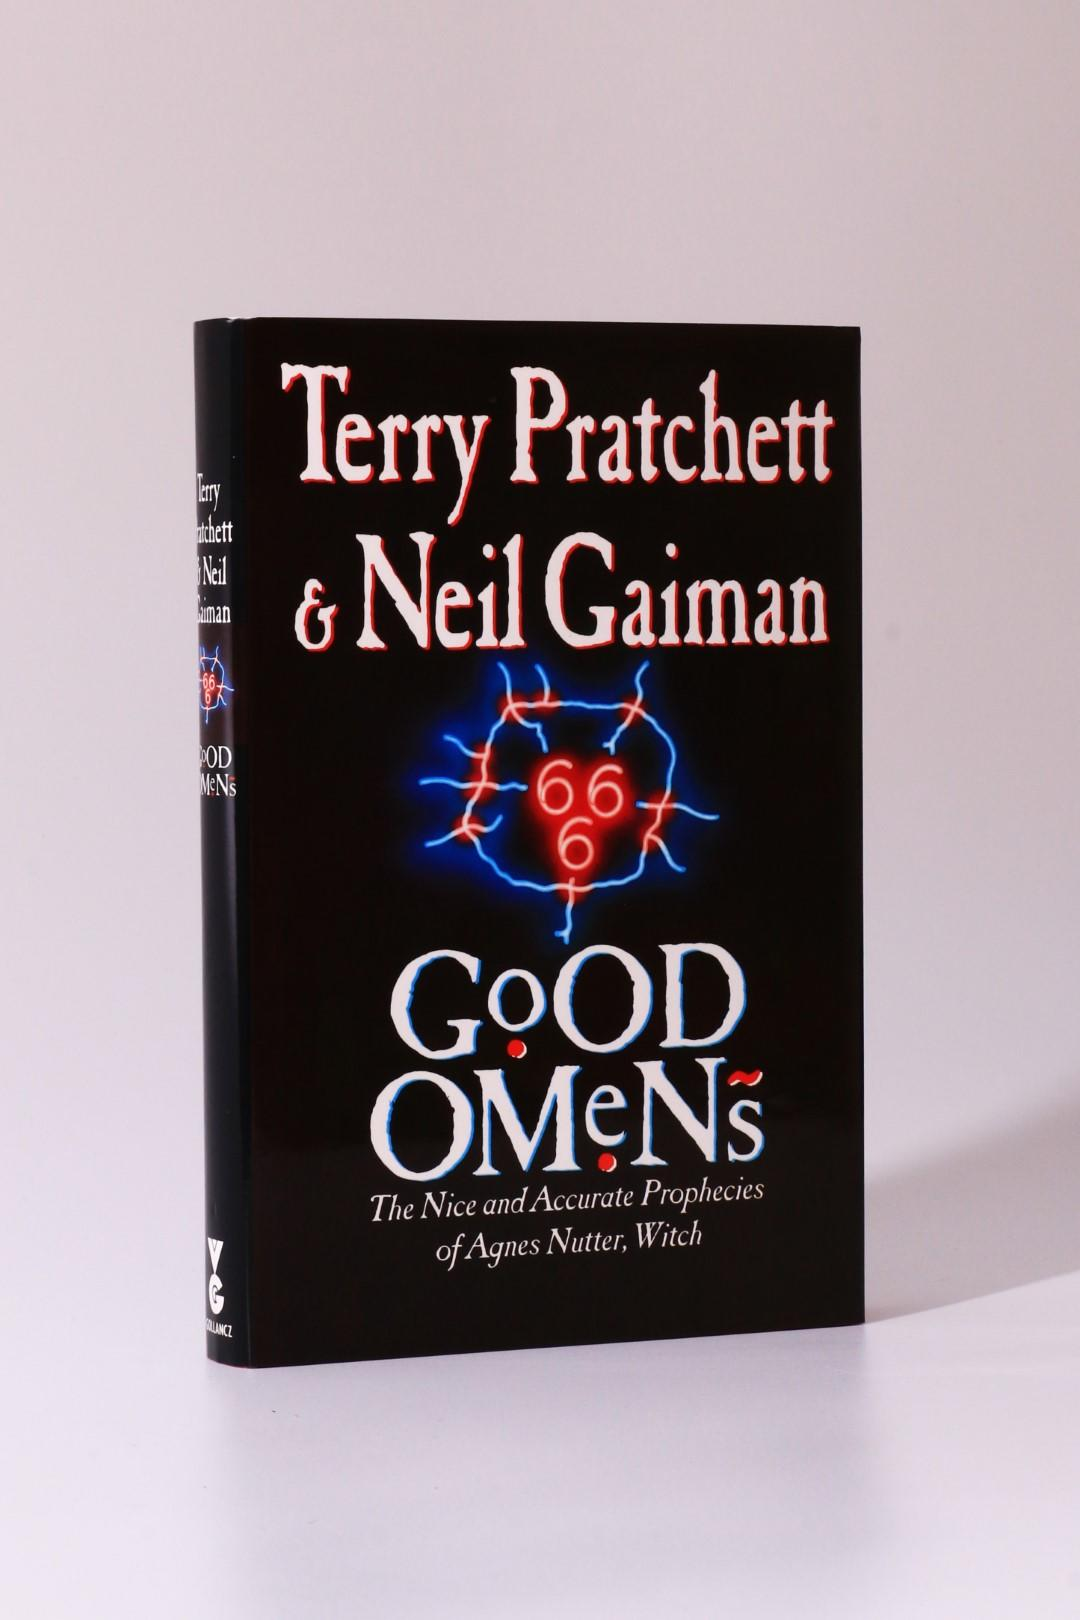 Terry Pratchett & Neil Gaiman - Good Omens - Gollancz, 1990, Signed First Edition.